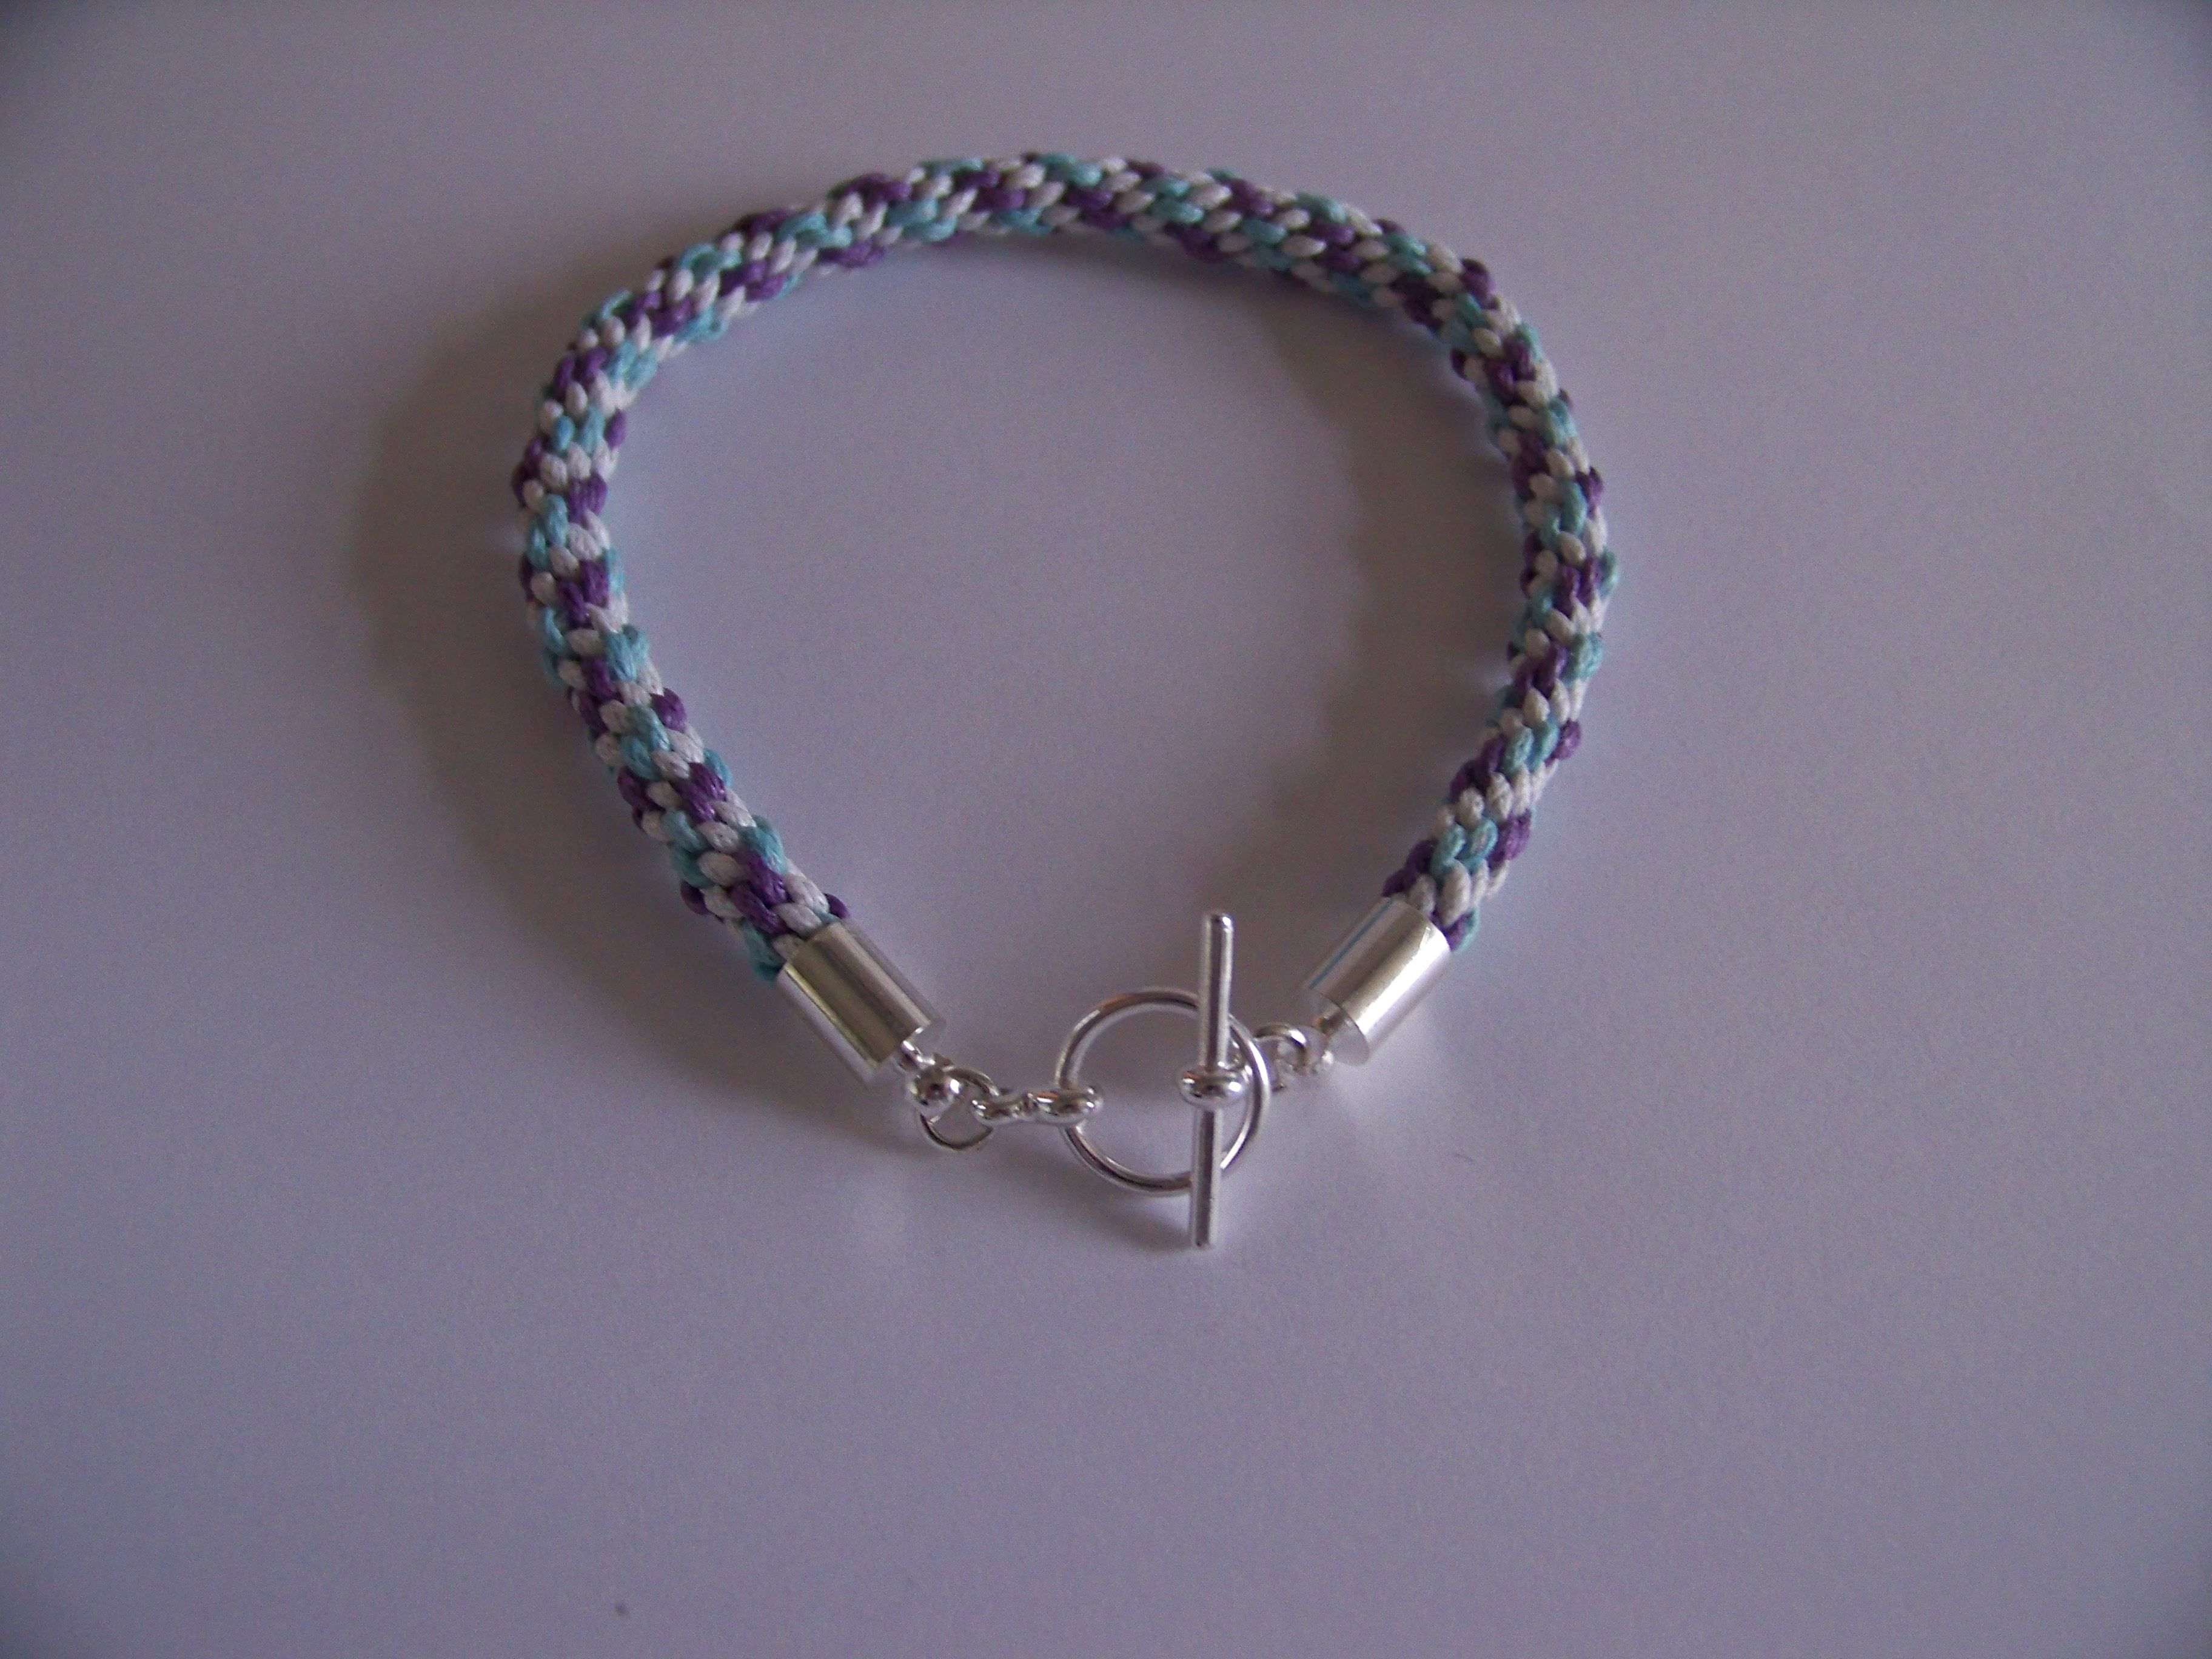 This Kumihimo Bracelet is made using 1mm Waxed Cord in White, Lilac and Aqua.